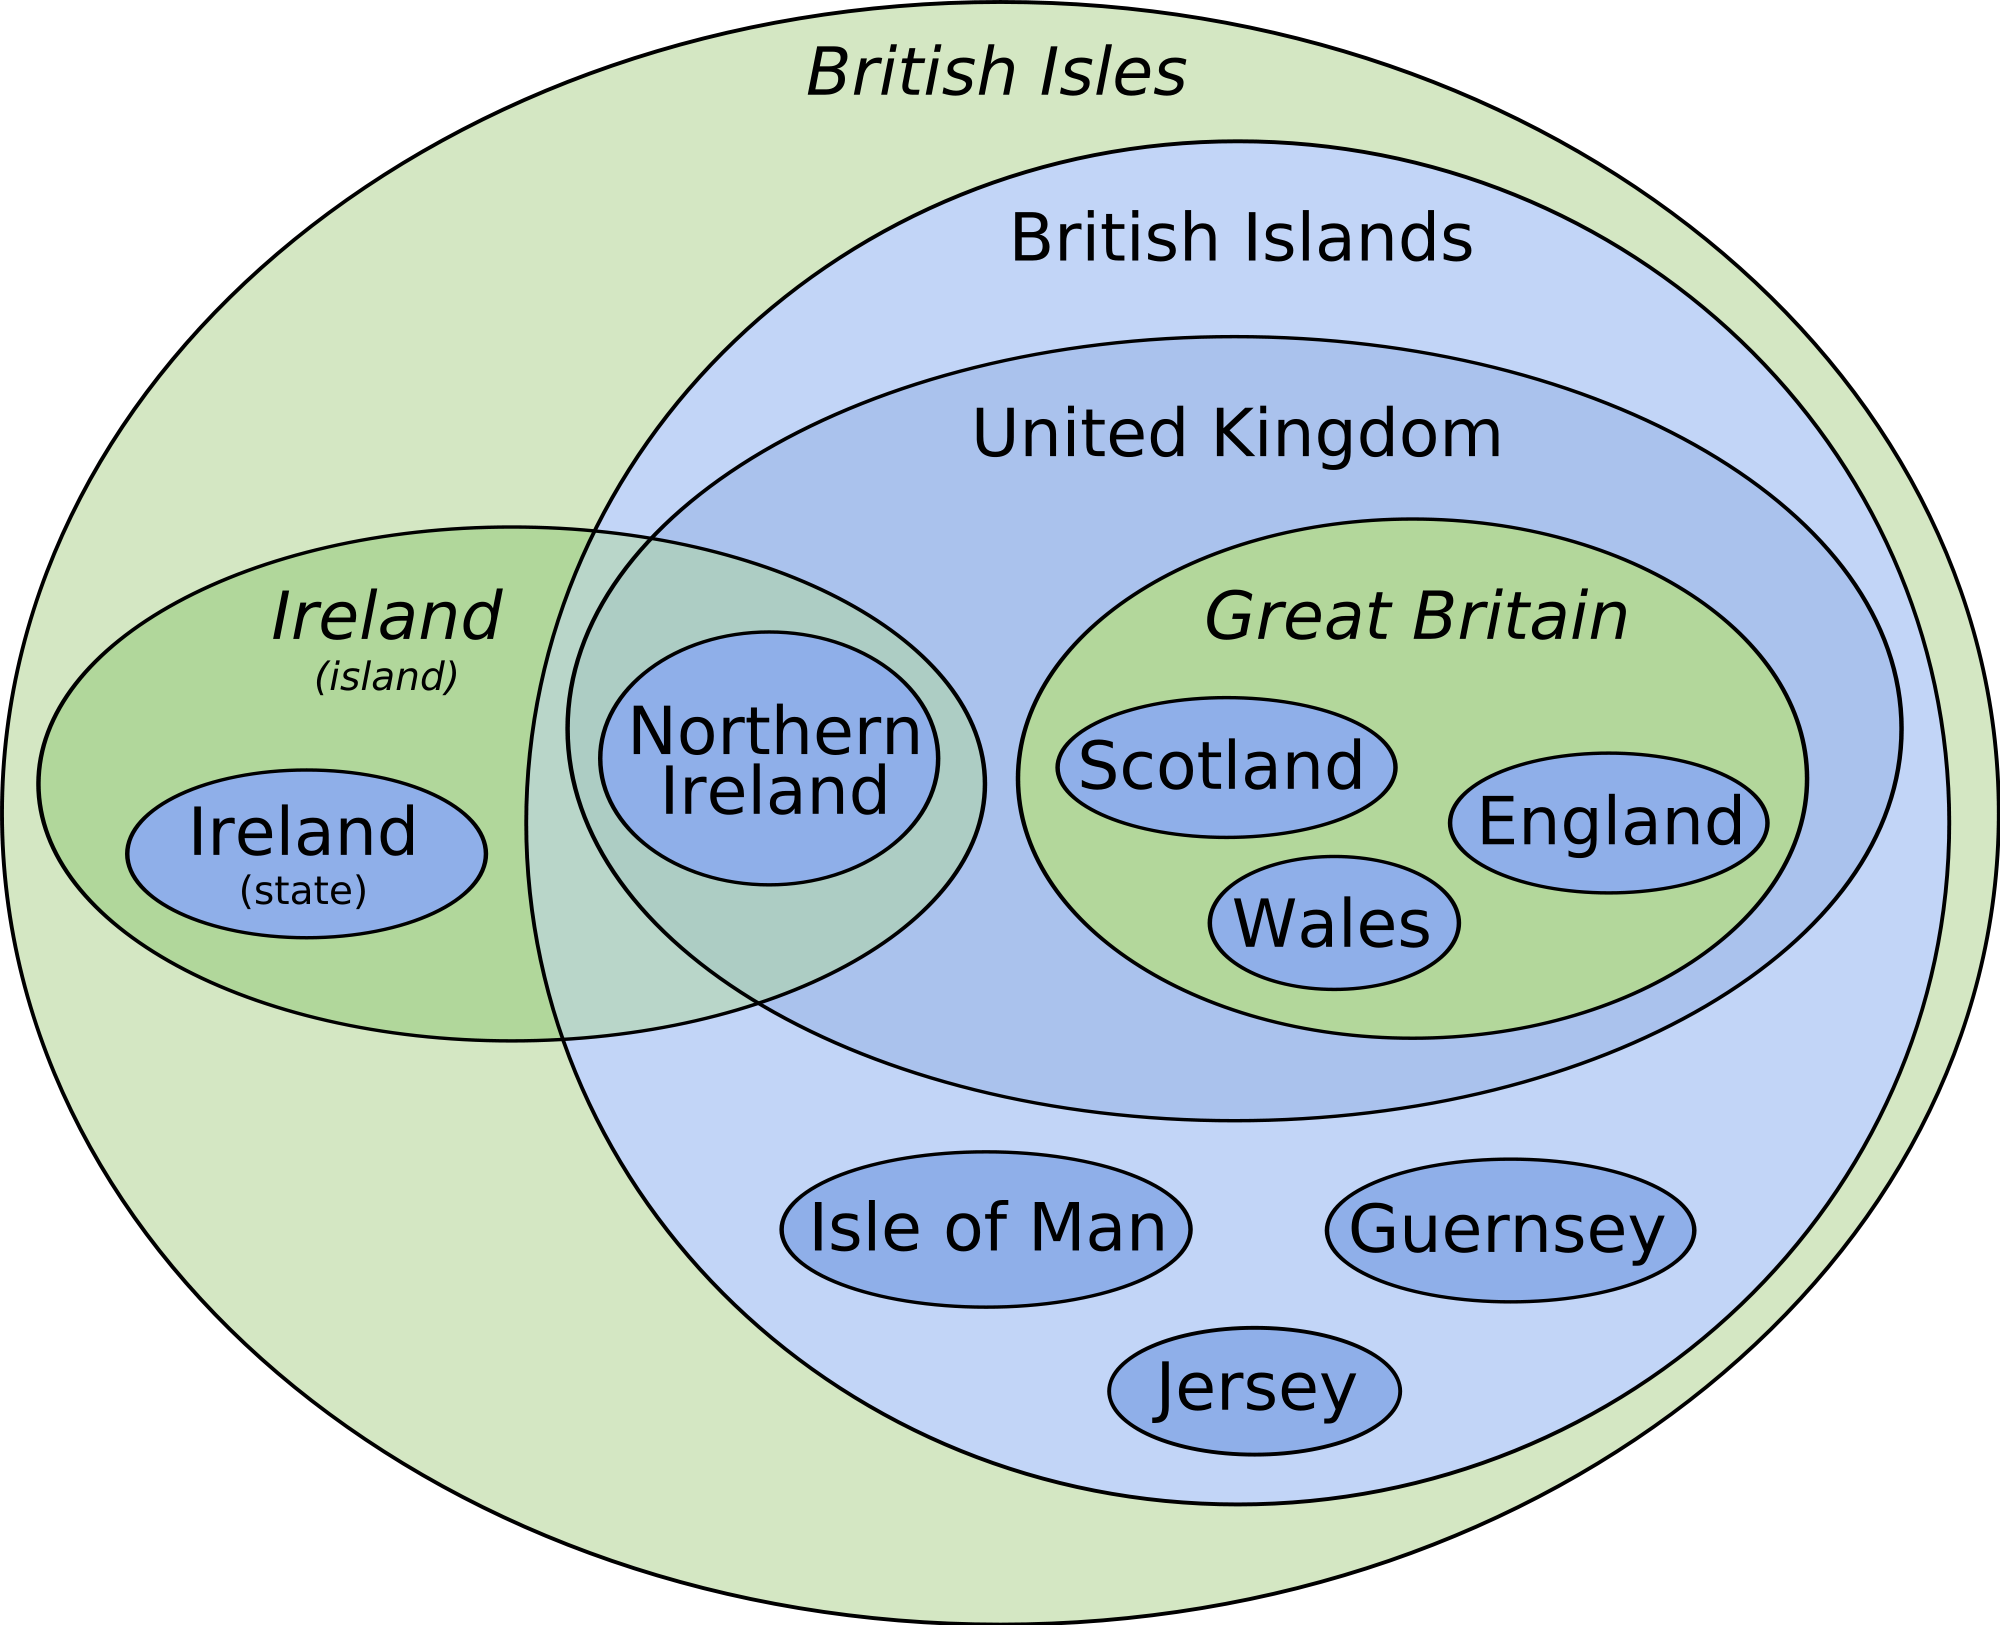 Geography lesson with British Isles Euler diagram